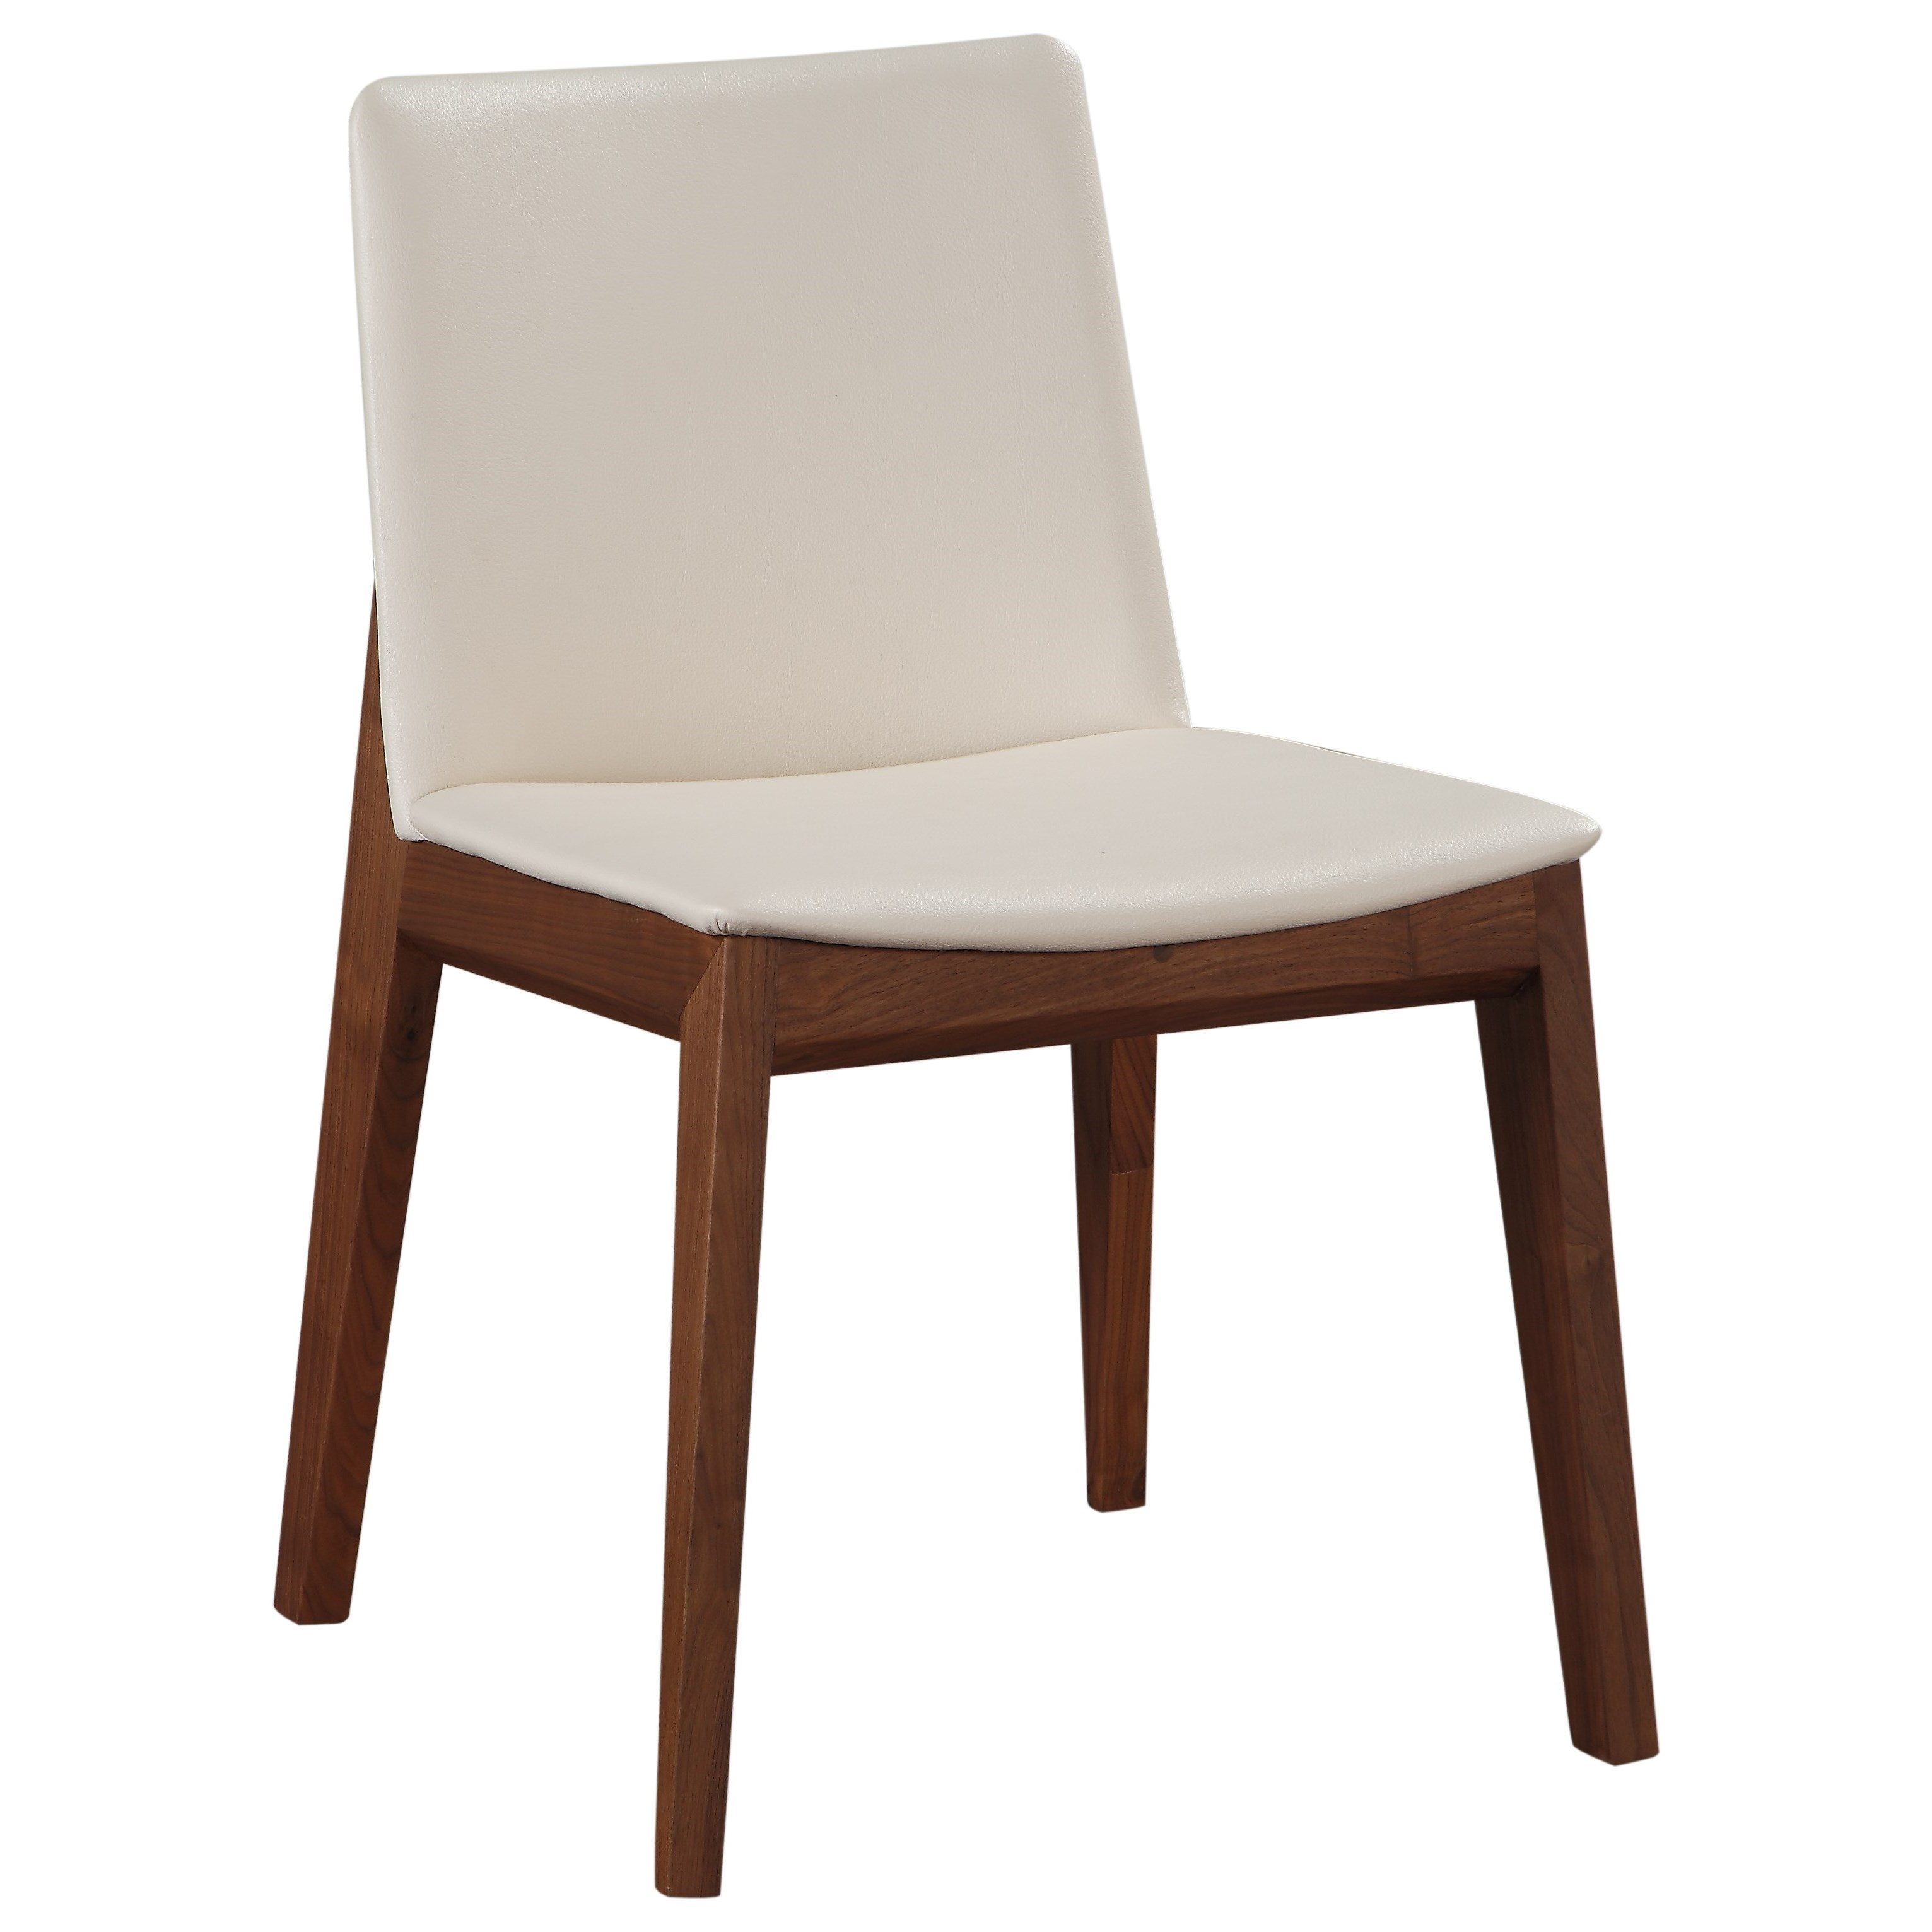 Mid-Century Modern Dining Side Chair